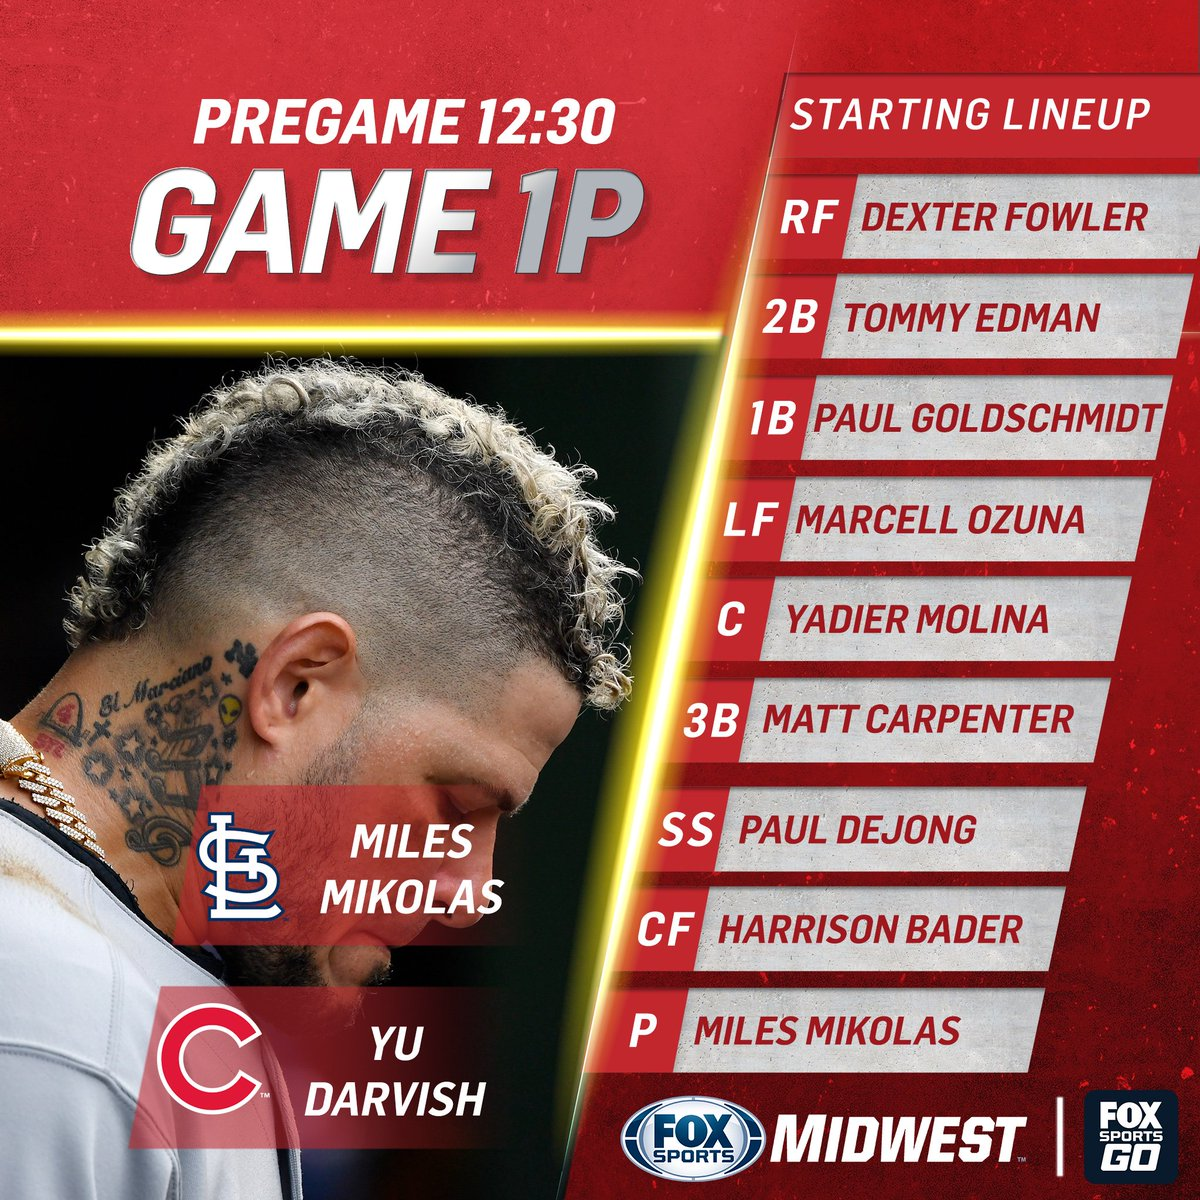 #STLCards go for the four-game sweep today at Wrigley. Toyota Cardinals Live pregame starts at 12:30. FSGO stream: a.fsgo.com/yuEdFtCfPZ #TimeToFly